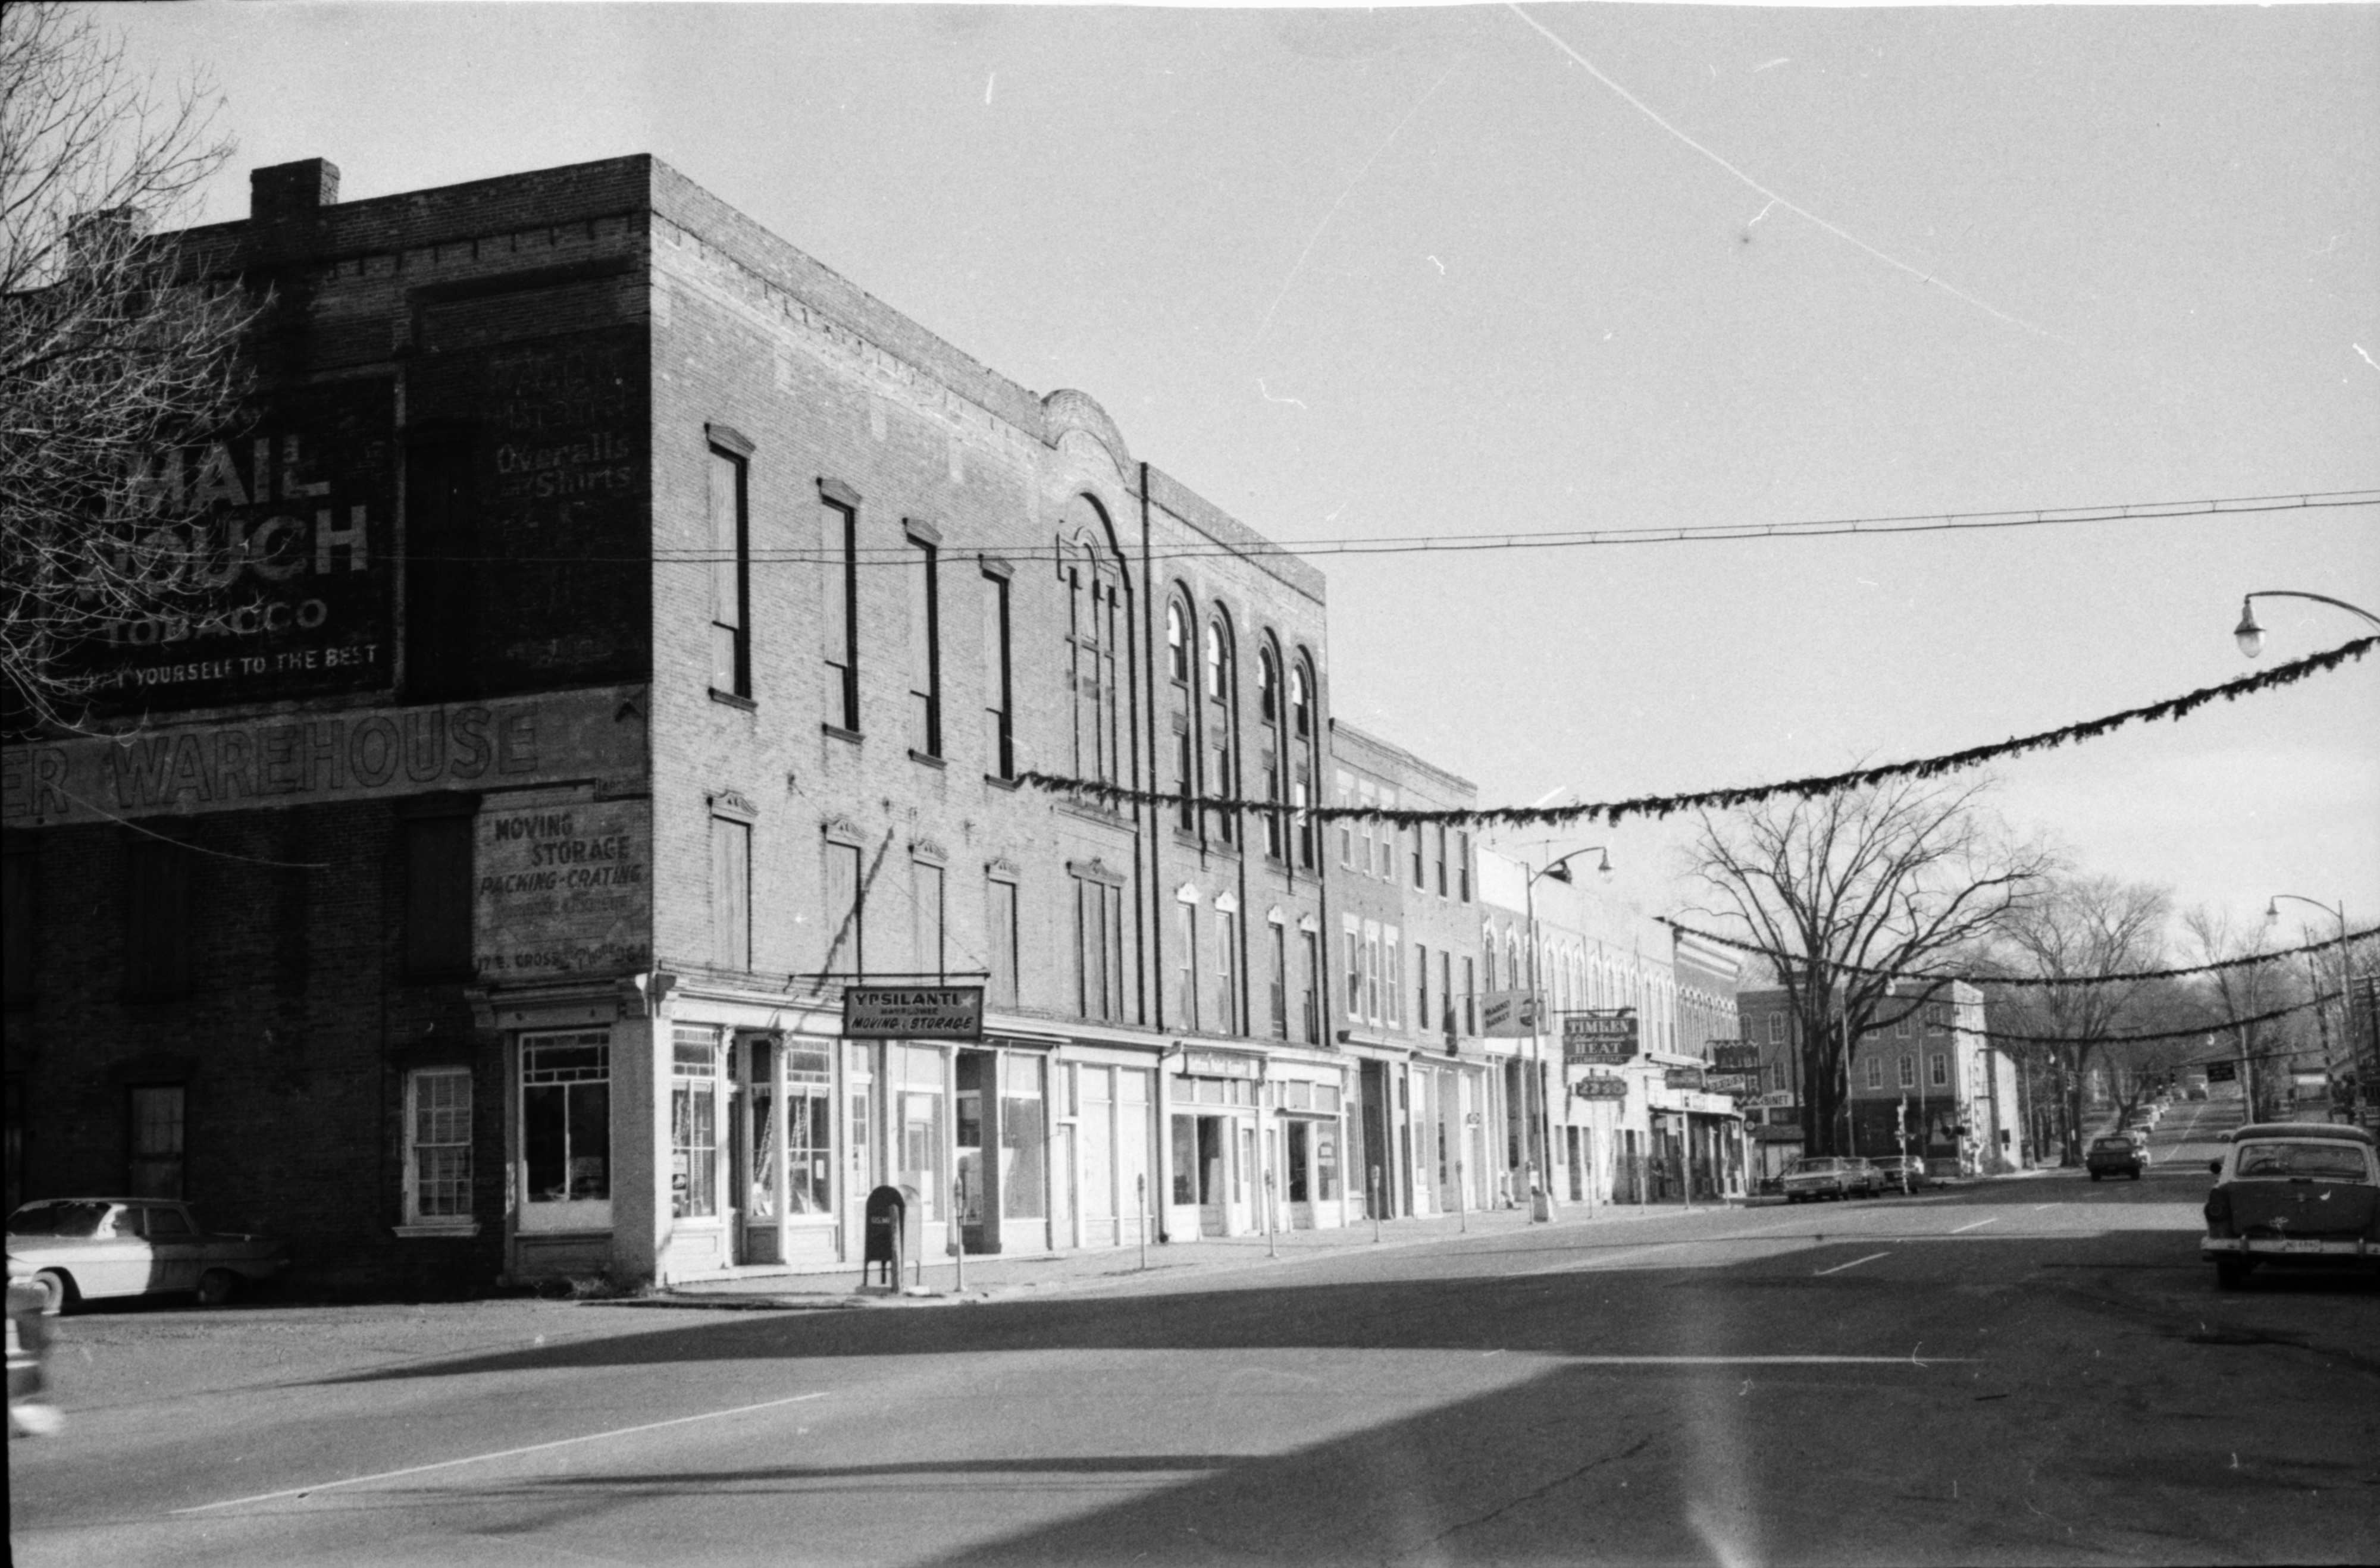 Old Buildings in Depot Town, Ypsianti, undated image